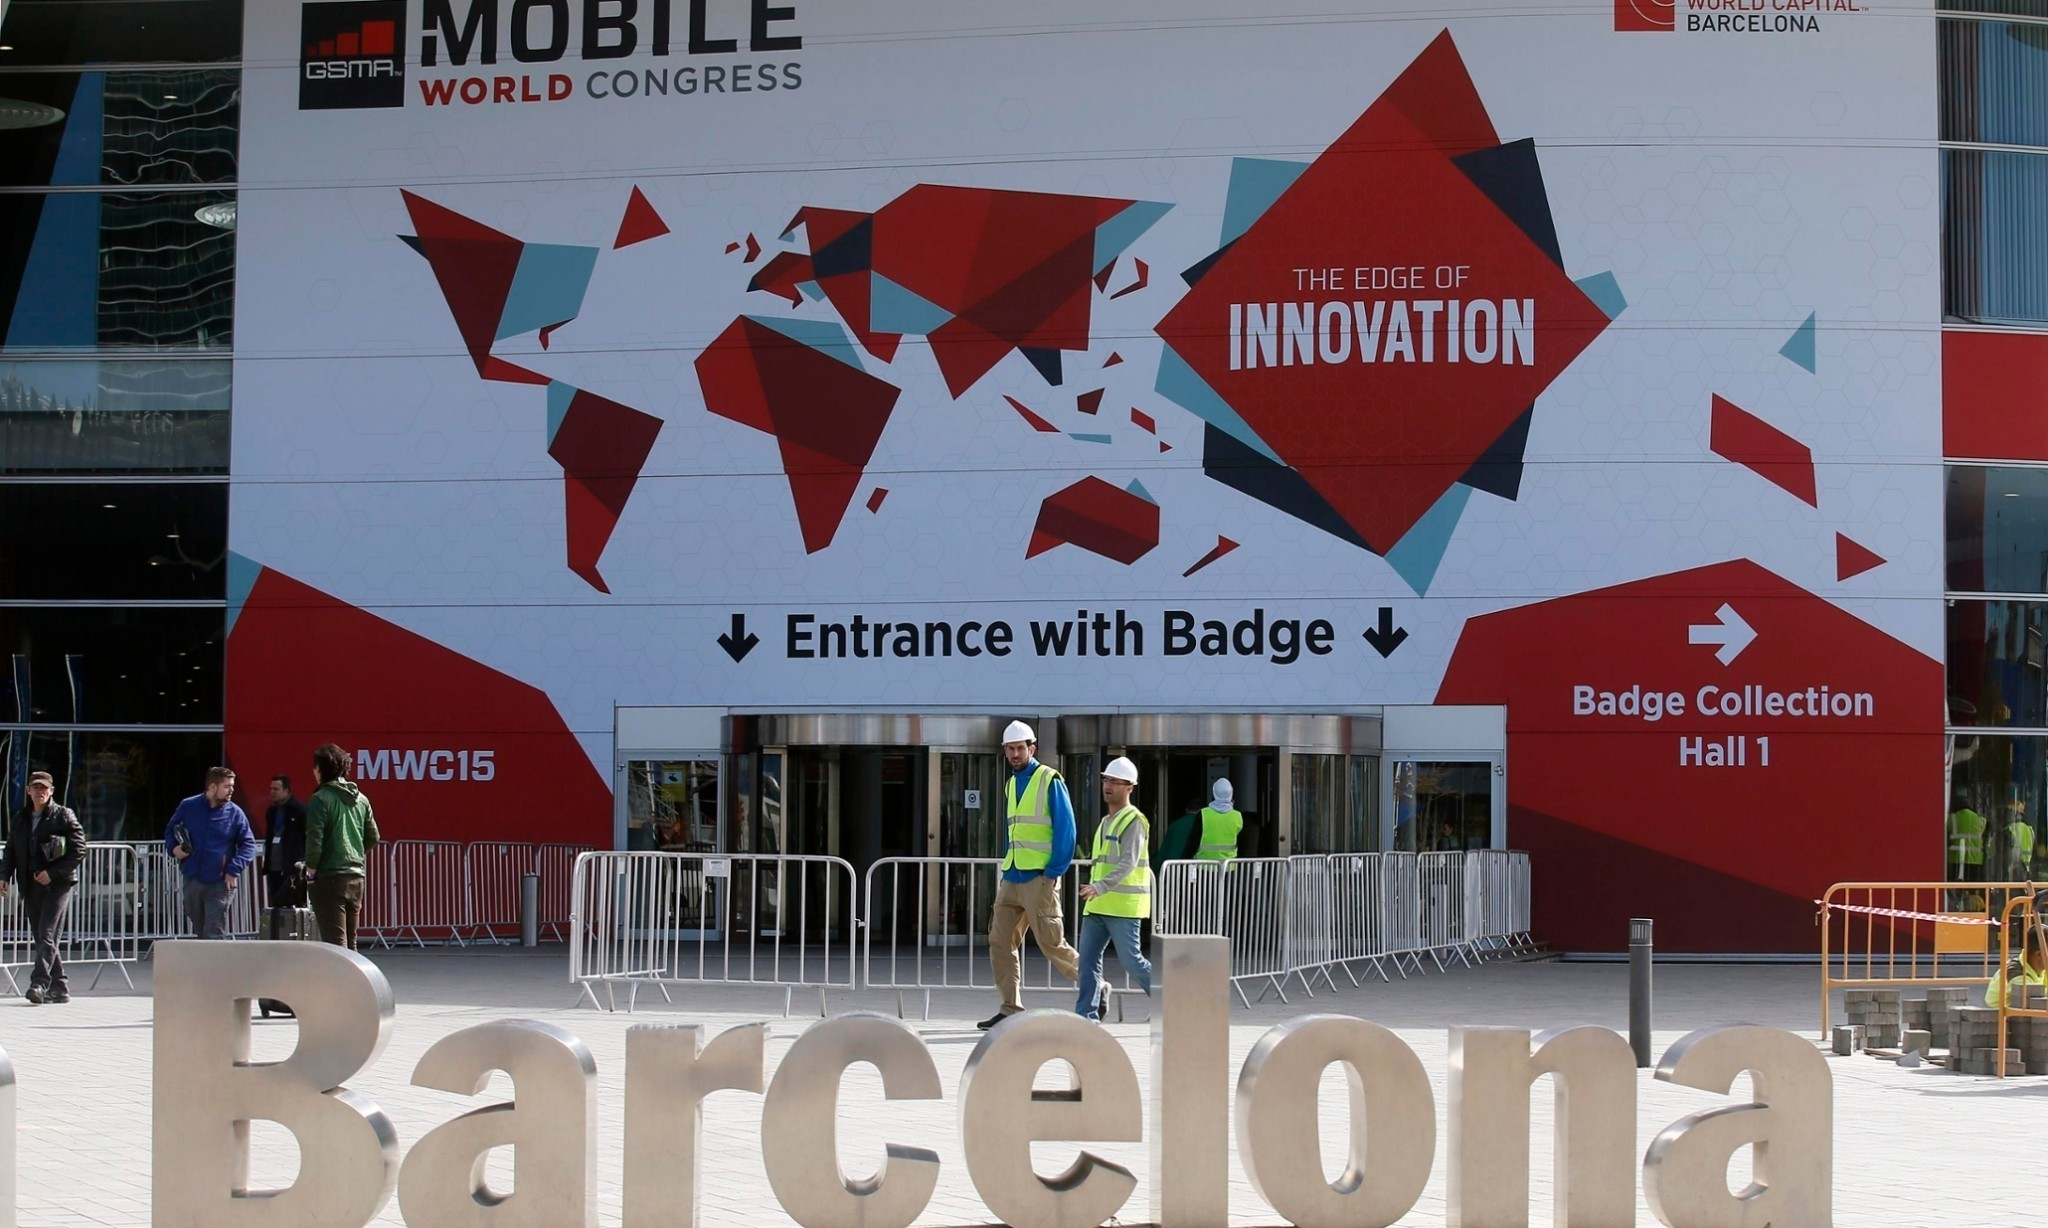 Mobile communications industry gathers in Barcelona for MWC 2015